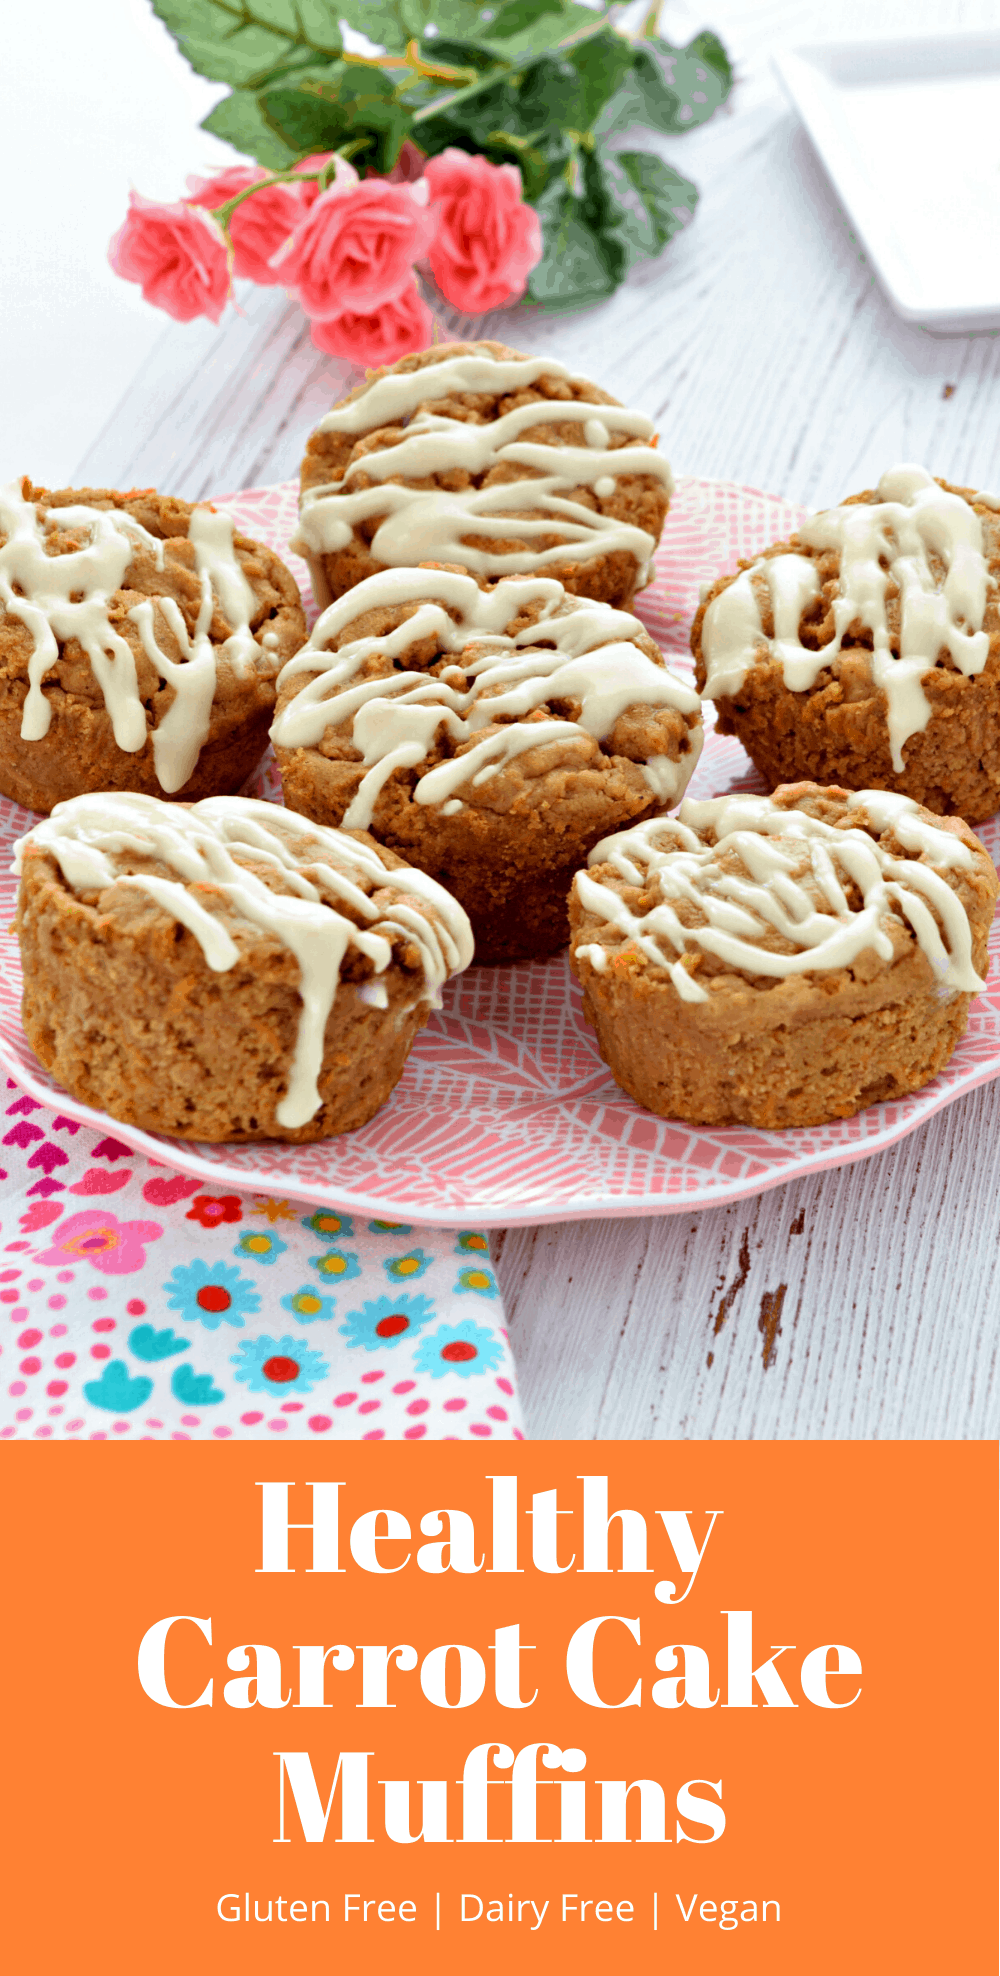 These vegan, refined sugar free, and gluten free carrot cake muffins are so delicious! They are super moist and have a wonderful spice flavor. They are the perfect treat for Easter! #glutenfree #vegan #dairyfree #easter #recipes #carrotcake #healthy #muffins